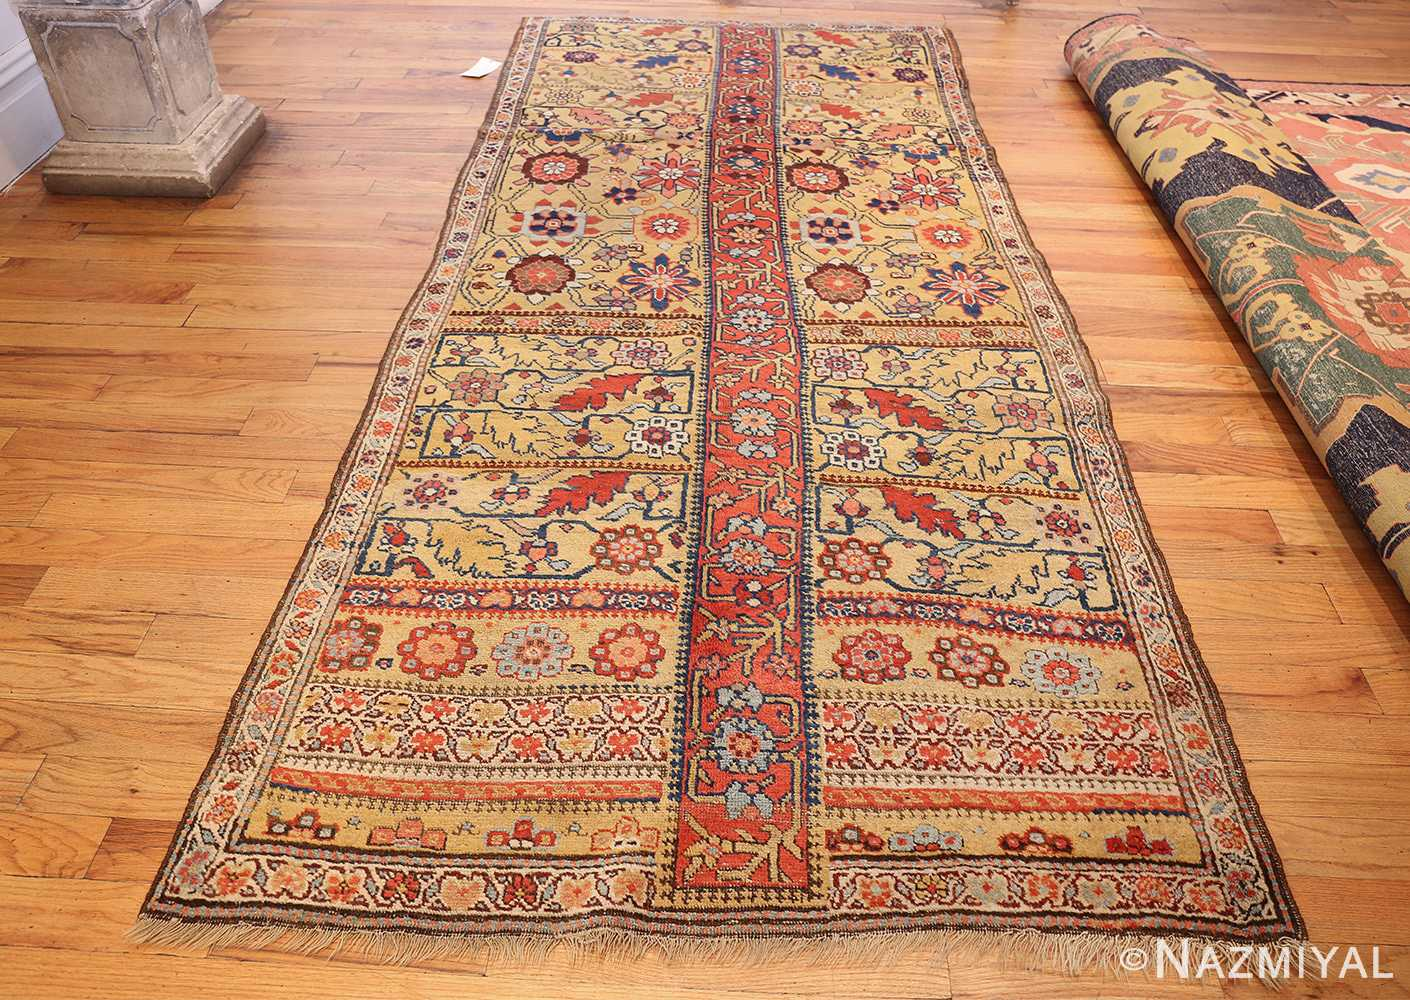 antique kurdish bidjar persian sampler rug 40485 whole Nazmiyal